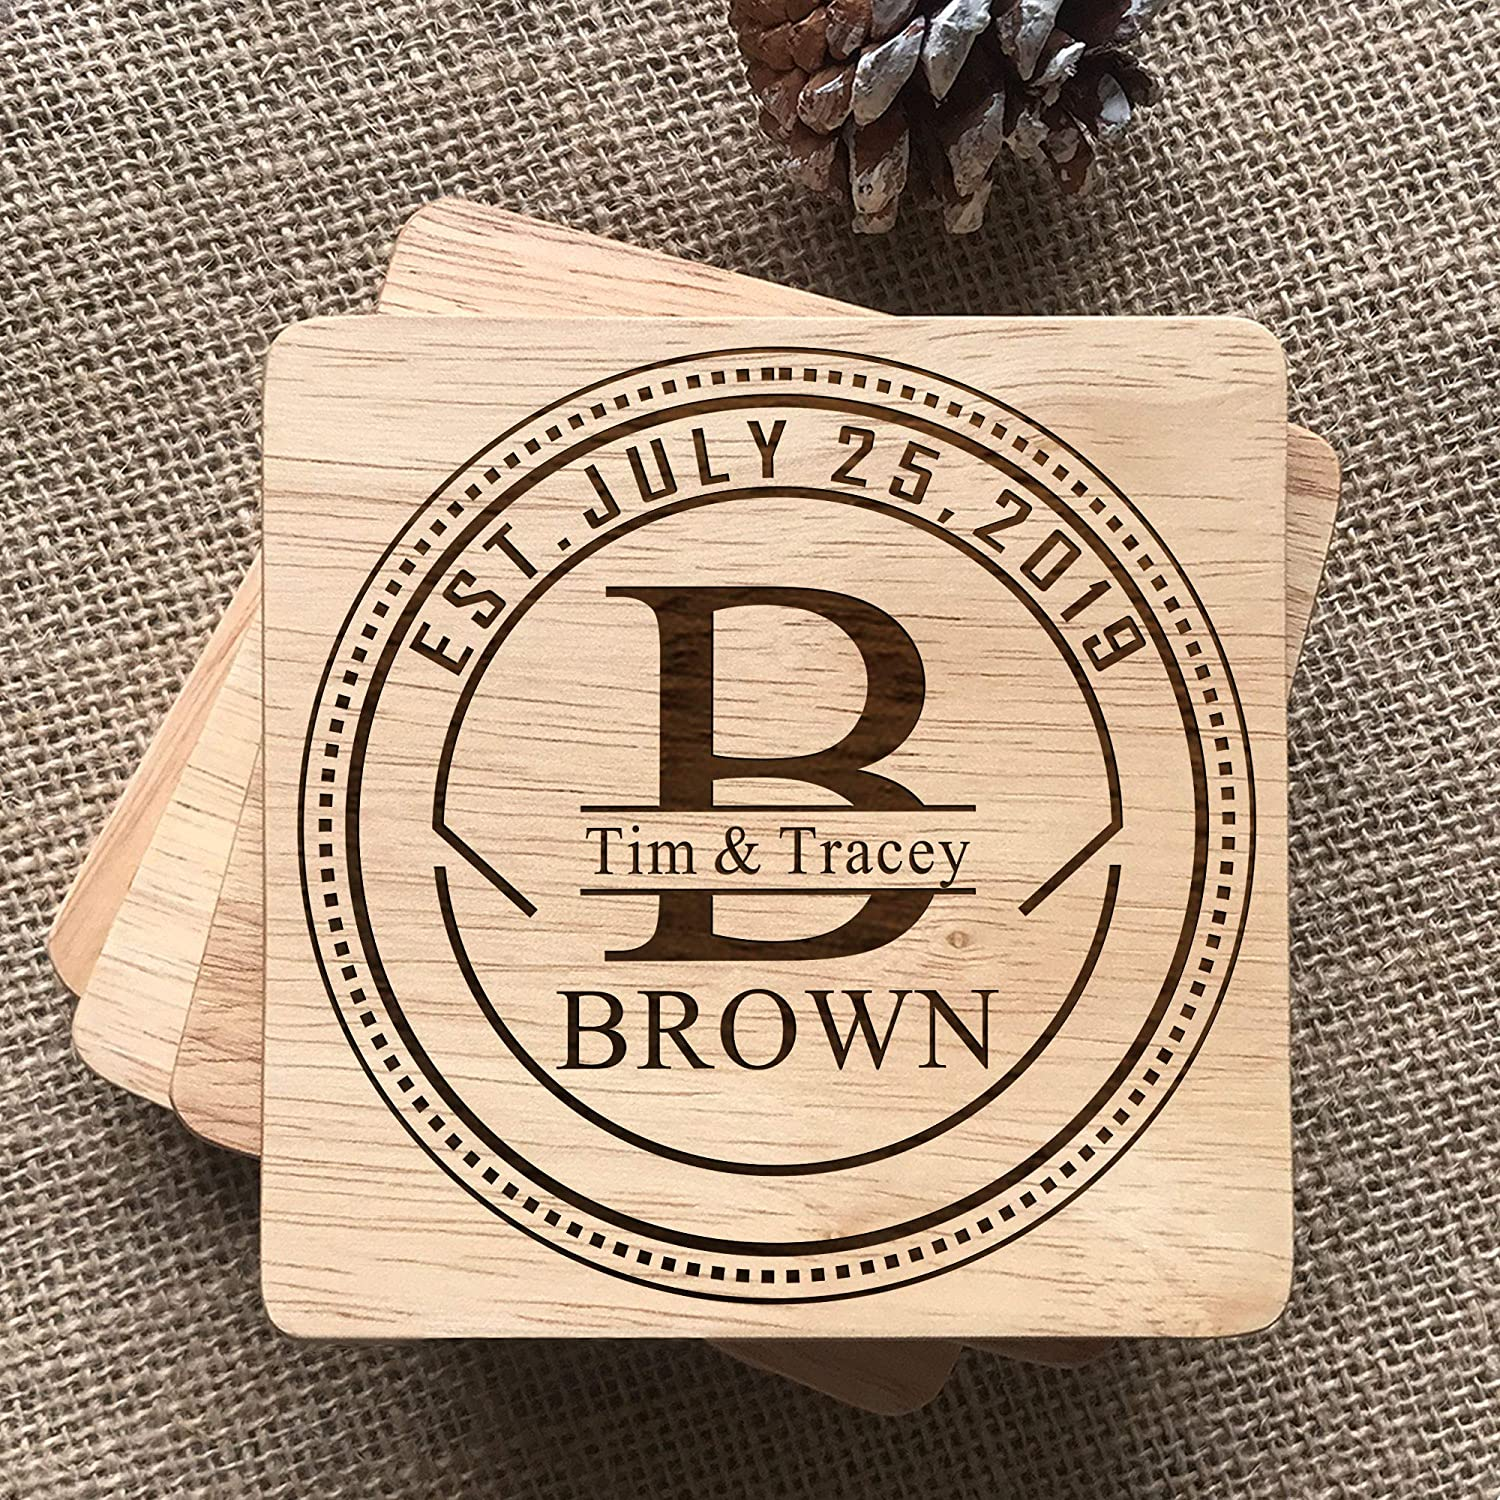 Parents 4x4 Set of 4 Grandparents Holiday Housewarming Birthdays Personalized Coasters Wooden Custom Engraving Coaster Gifts for Wedding